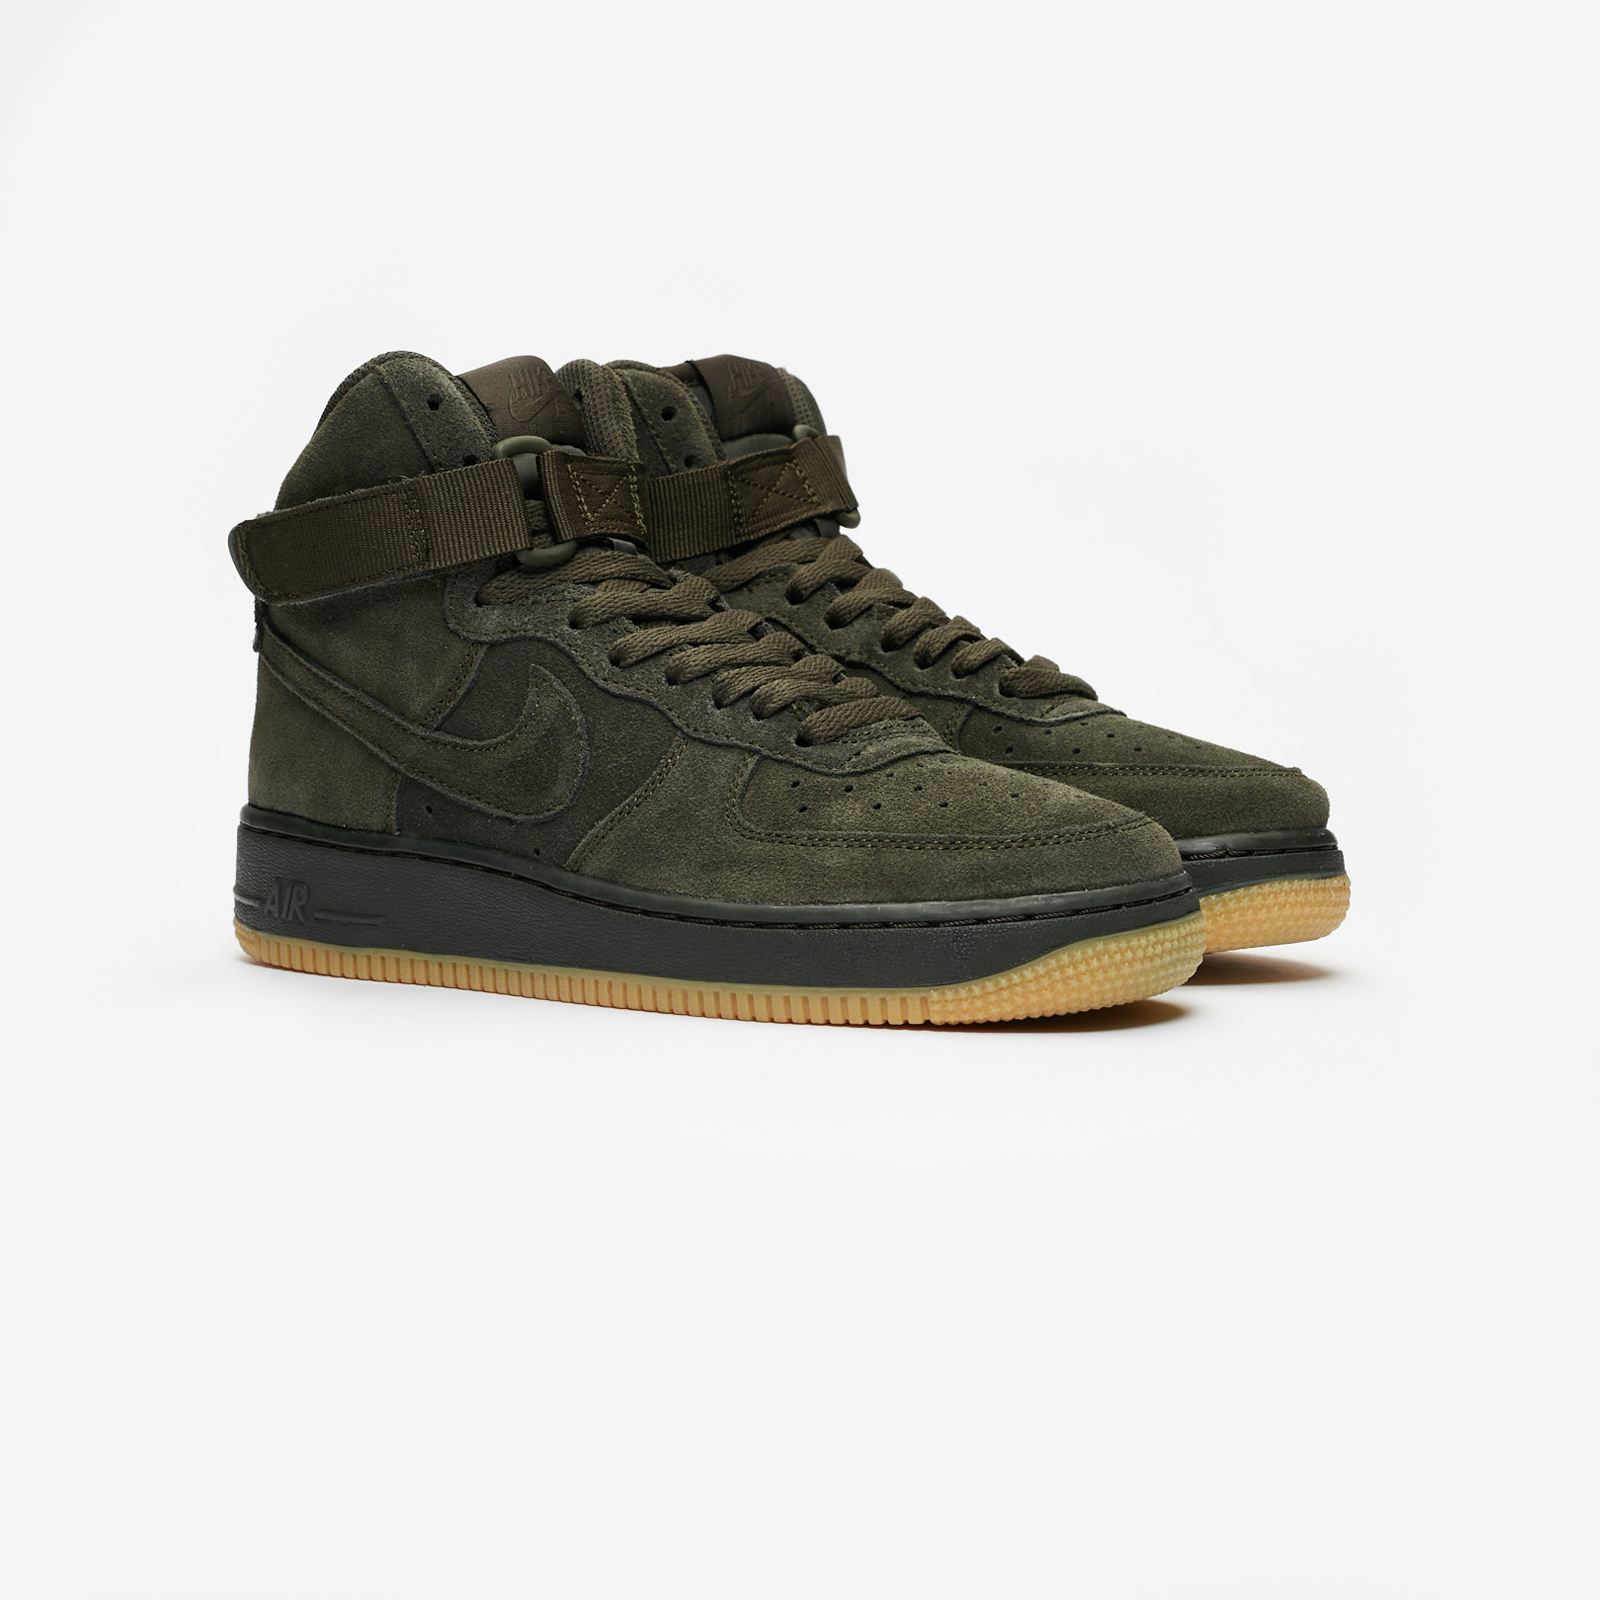 Shoes NIKE Air Force 1 High Lv8 (GS) 807617 300 SequoiaSequoia